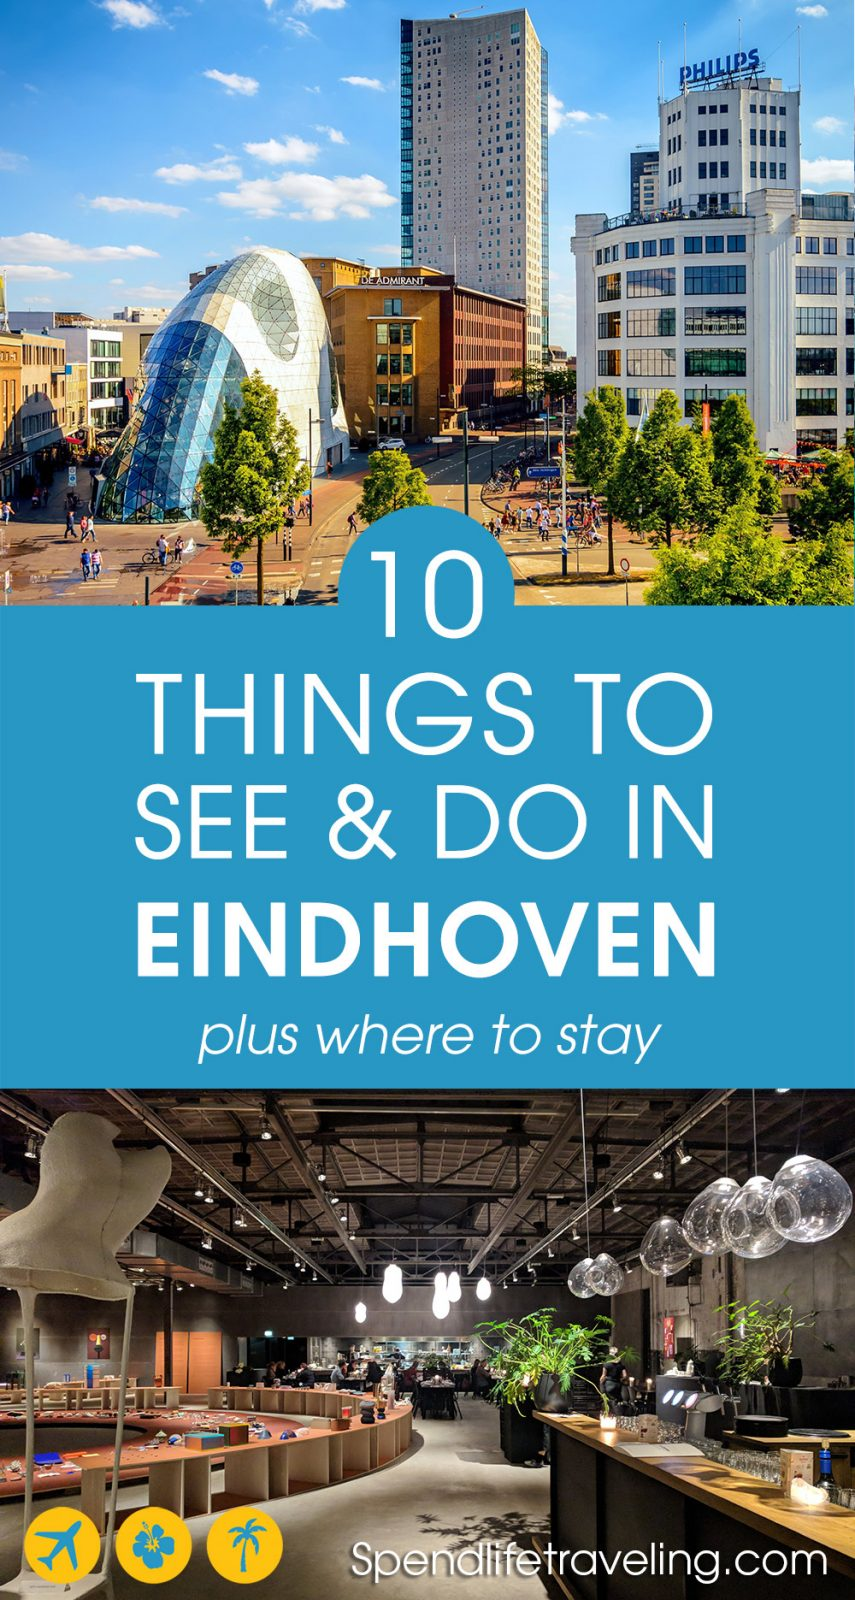 What to see, what to do and where to stay in Eindhoven for the perfect city break.